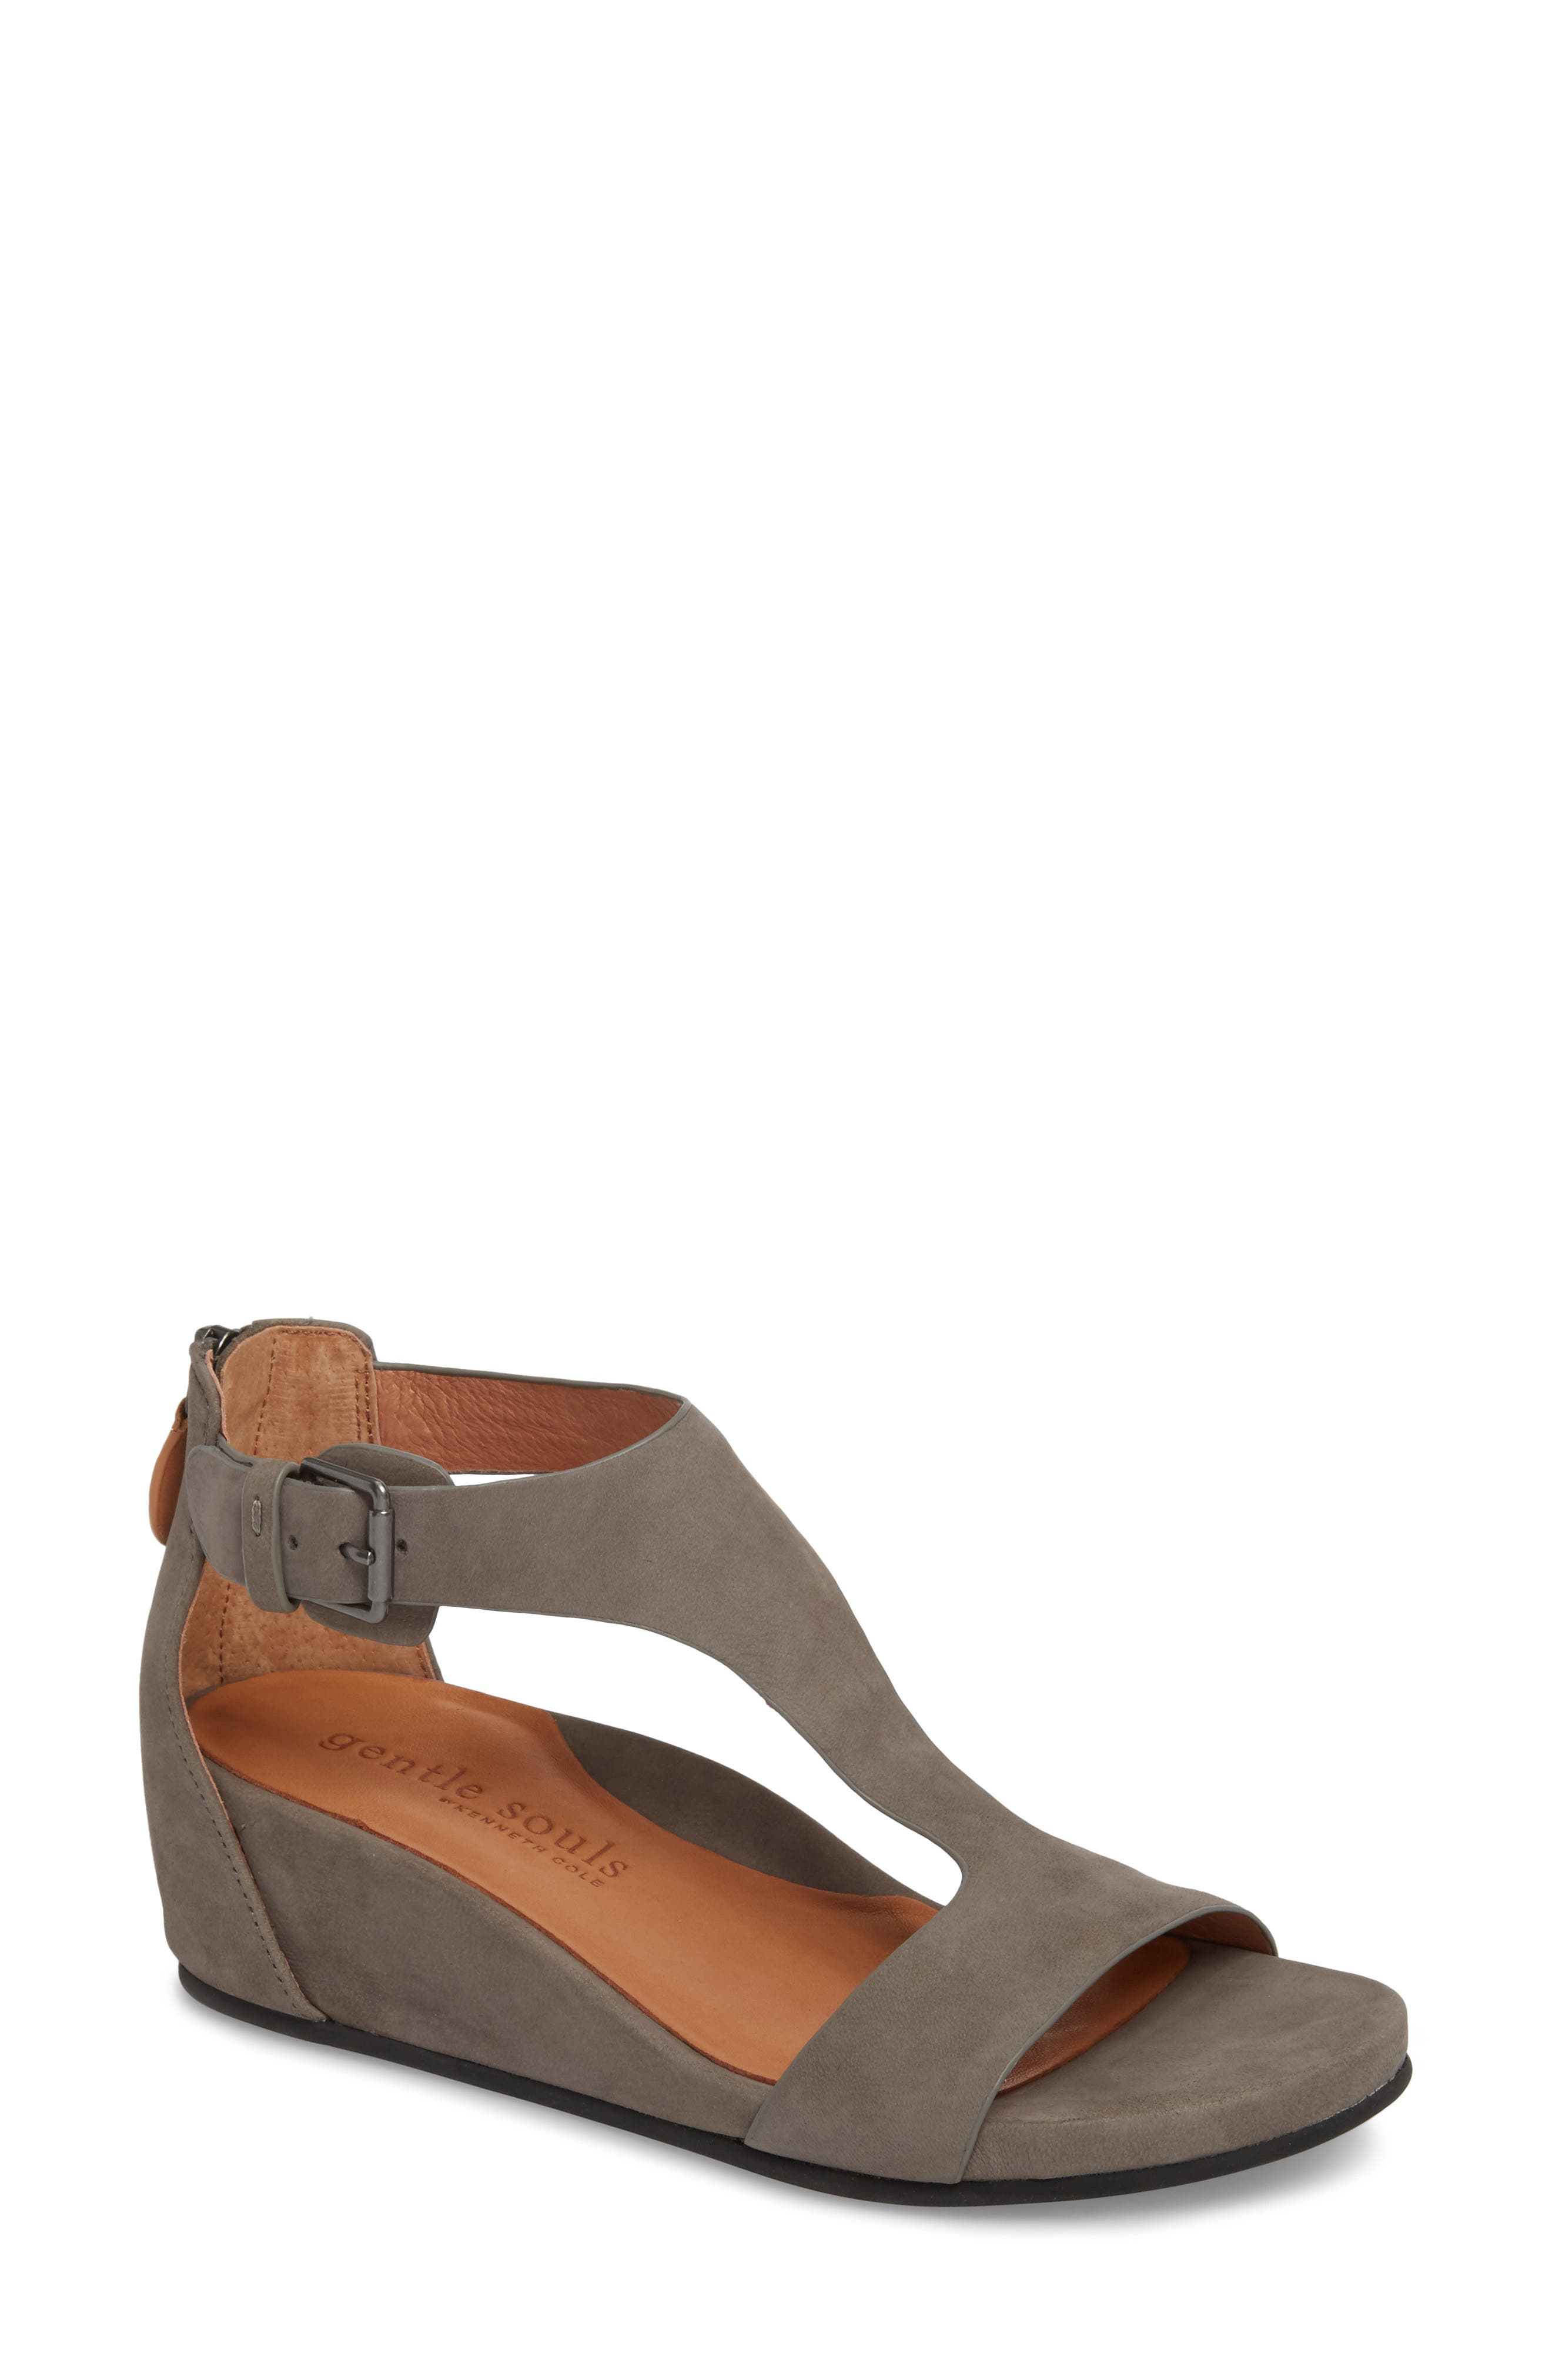 Gentle Souls Gisele Wedge Sandal (Women)